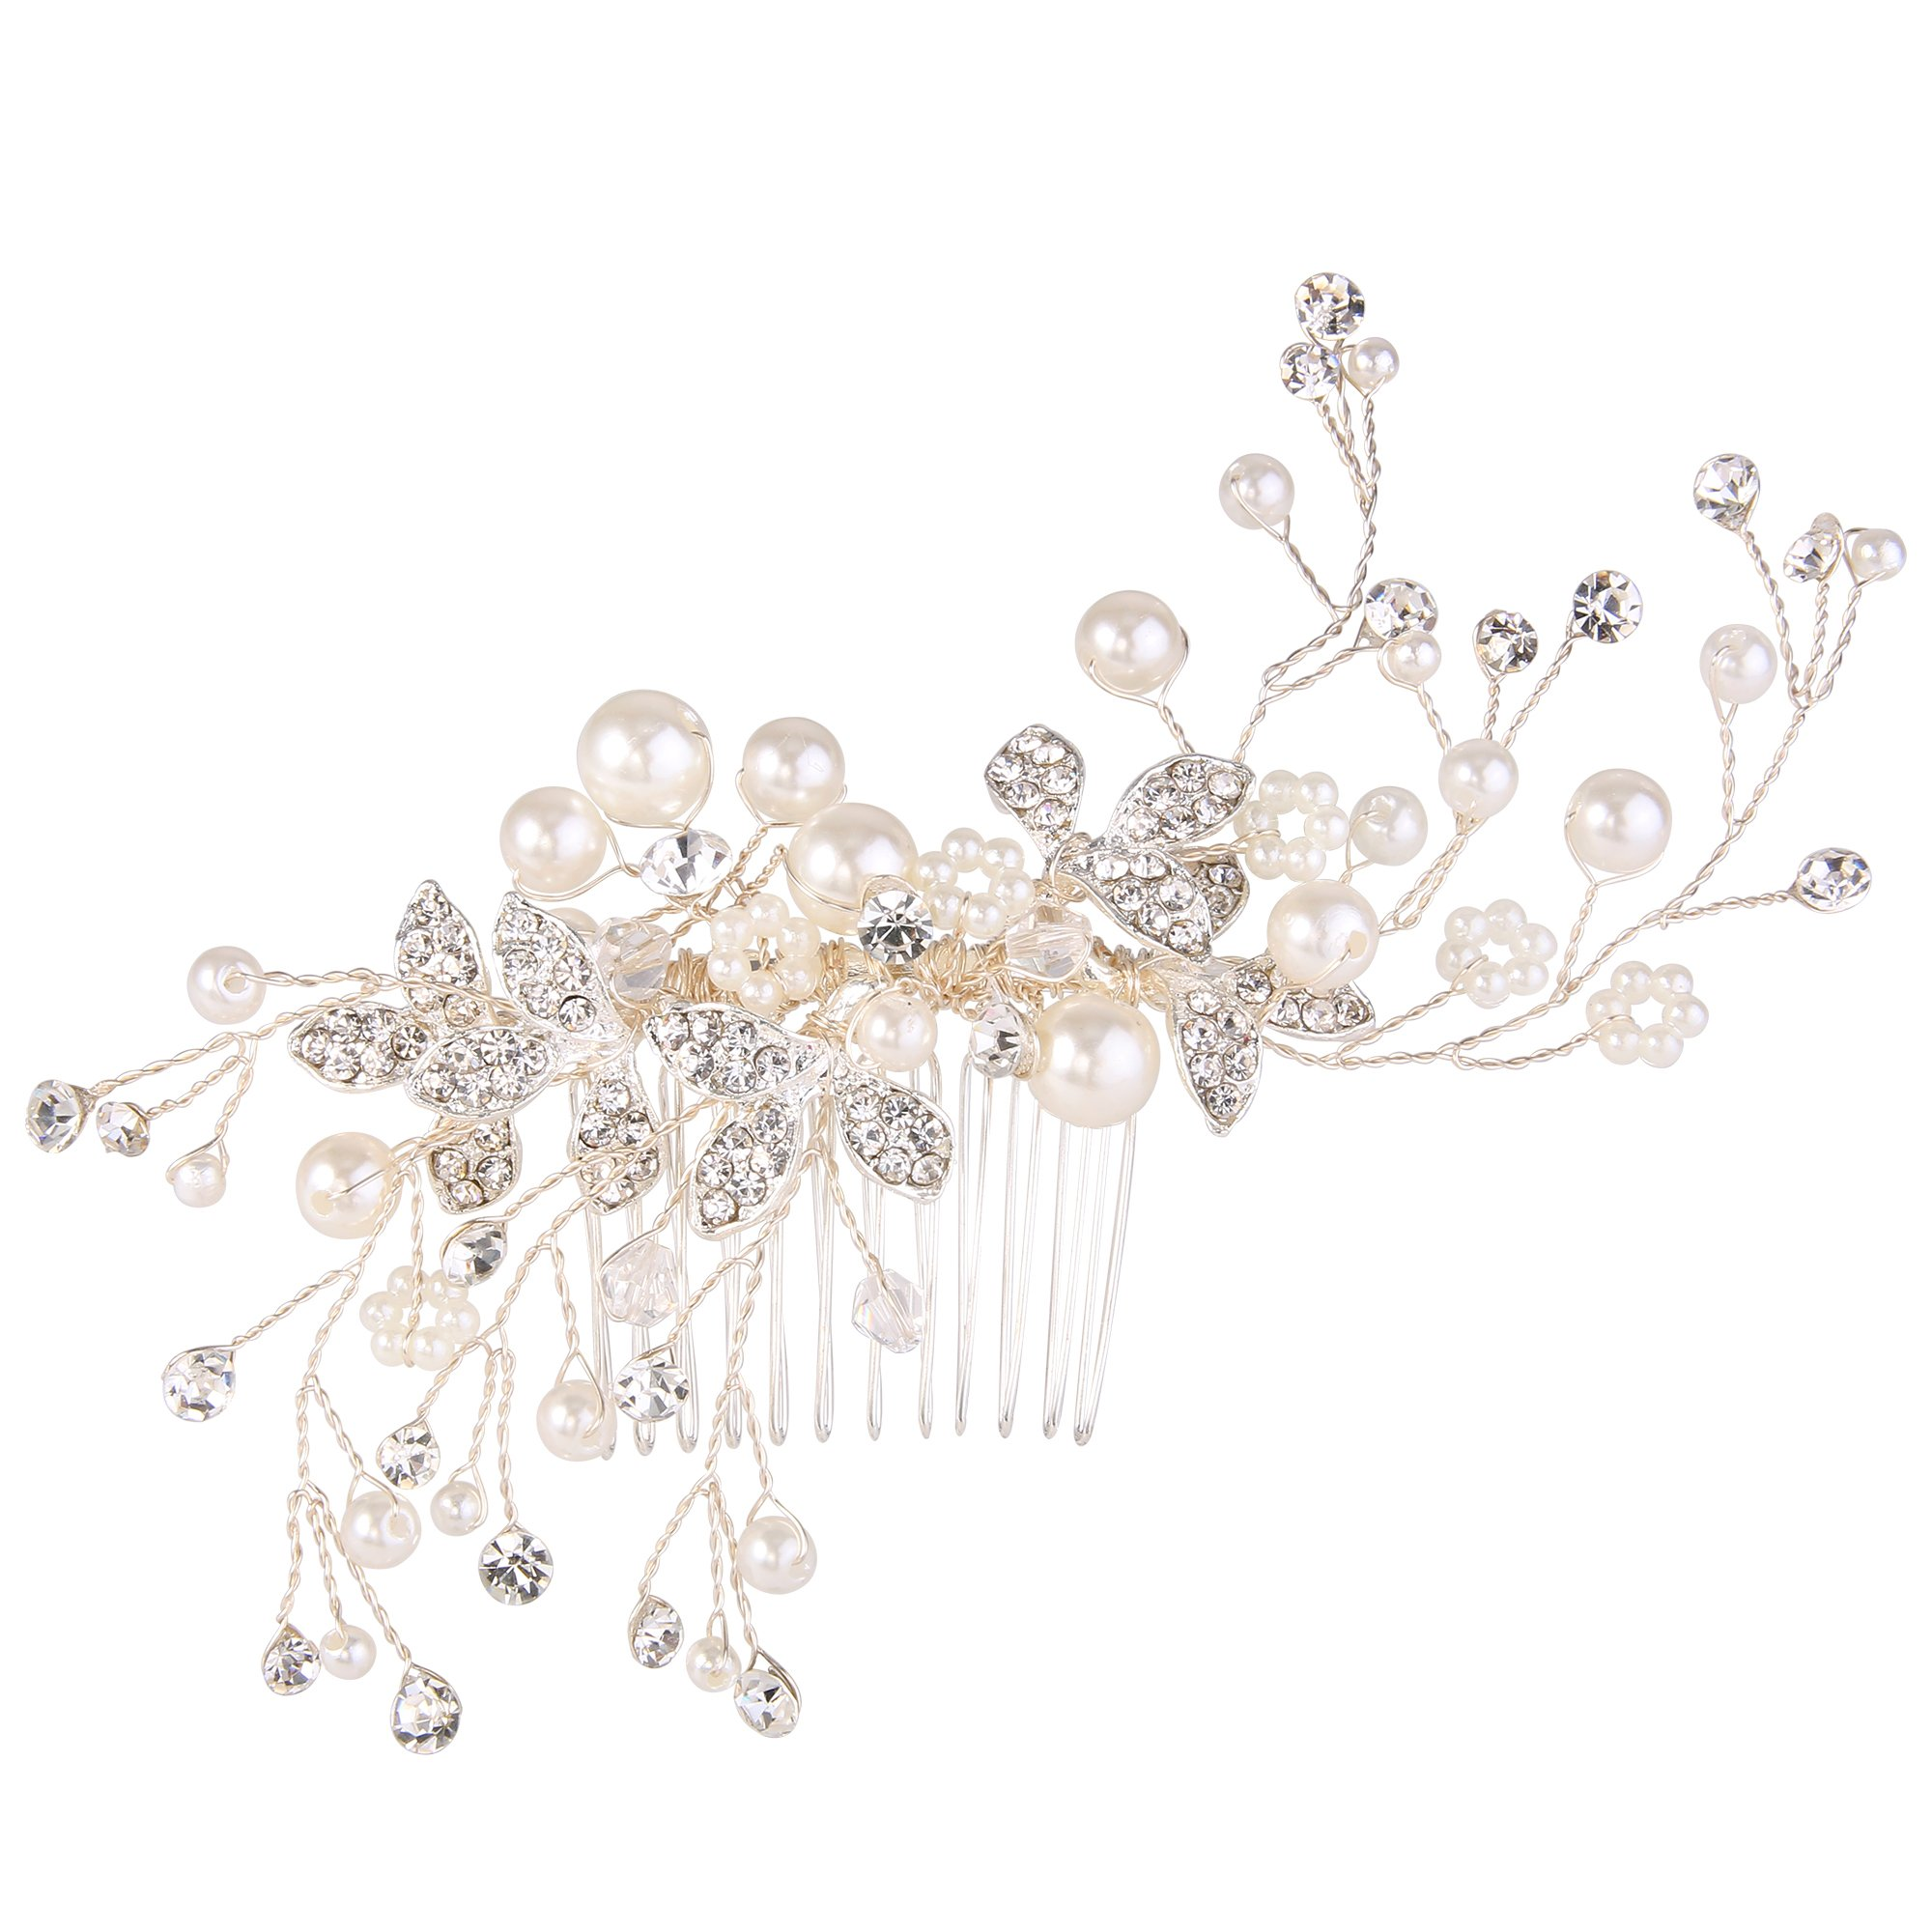 BriLove Wedding Bridal Hair Comb Hair Accessories with Ivory Color Simulated Pearl Crystal Floral DIY Handmade Bendable Filigree Bead for Women Clear Silver Tone by BriLove